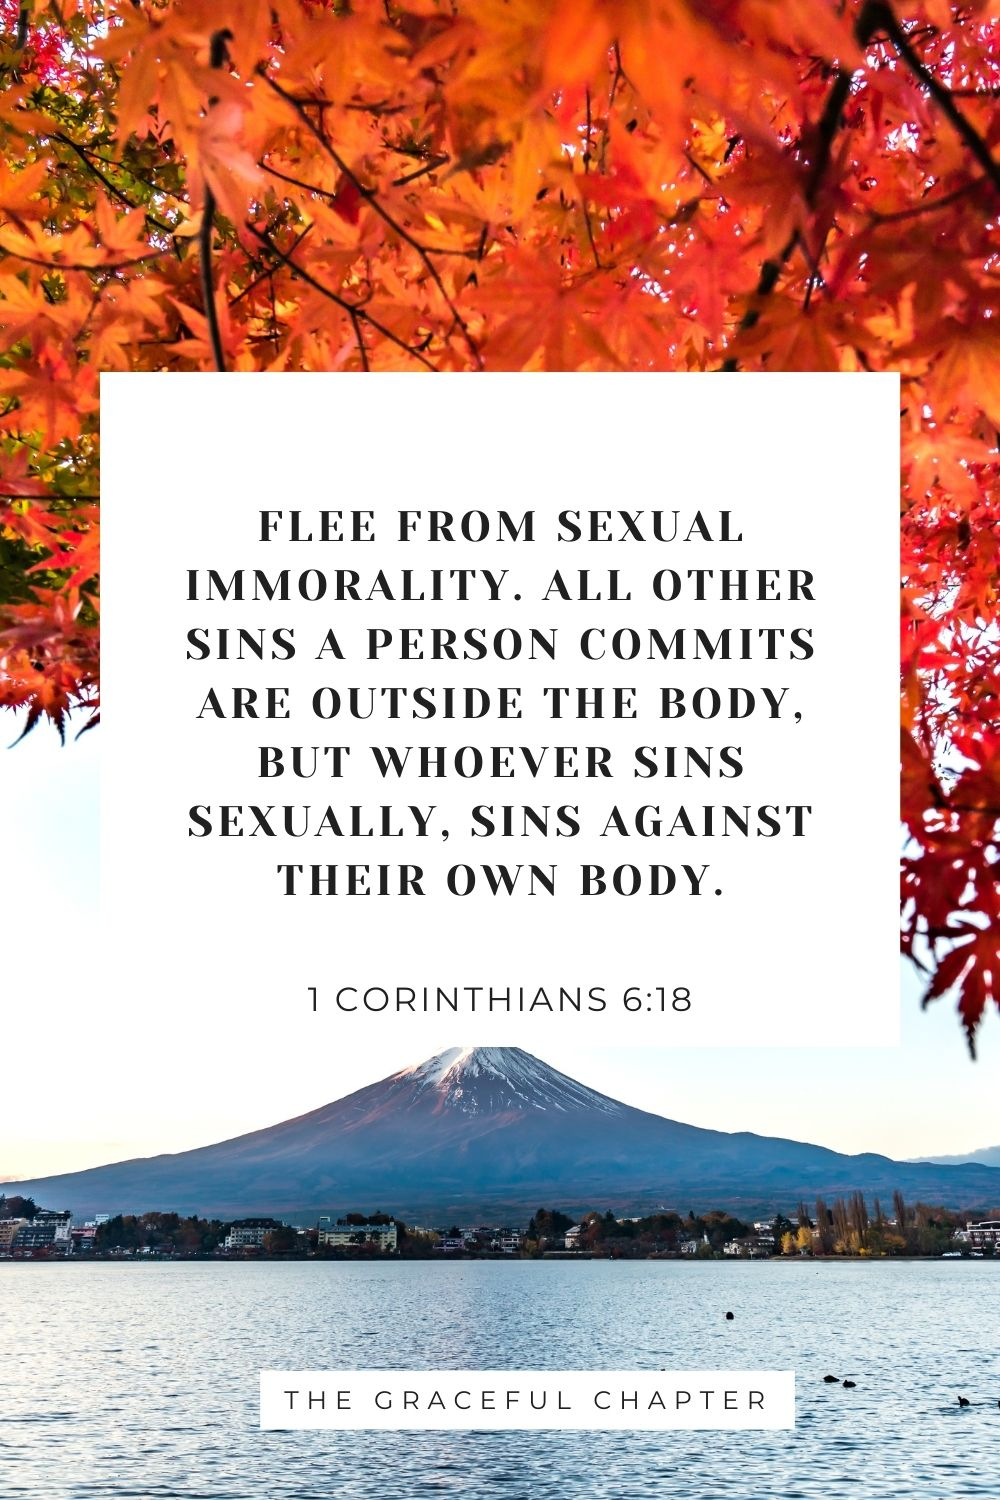 Flee from sexual immorality. All other sins a person commits are outside the body, but whoever sins sexually, sins against their own body. 1 Corinthians 6:18